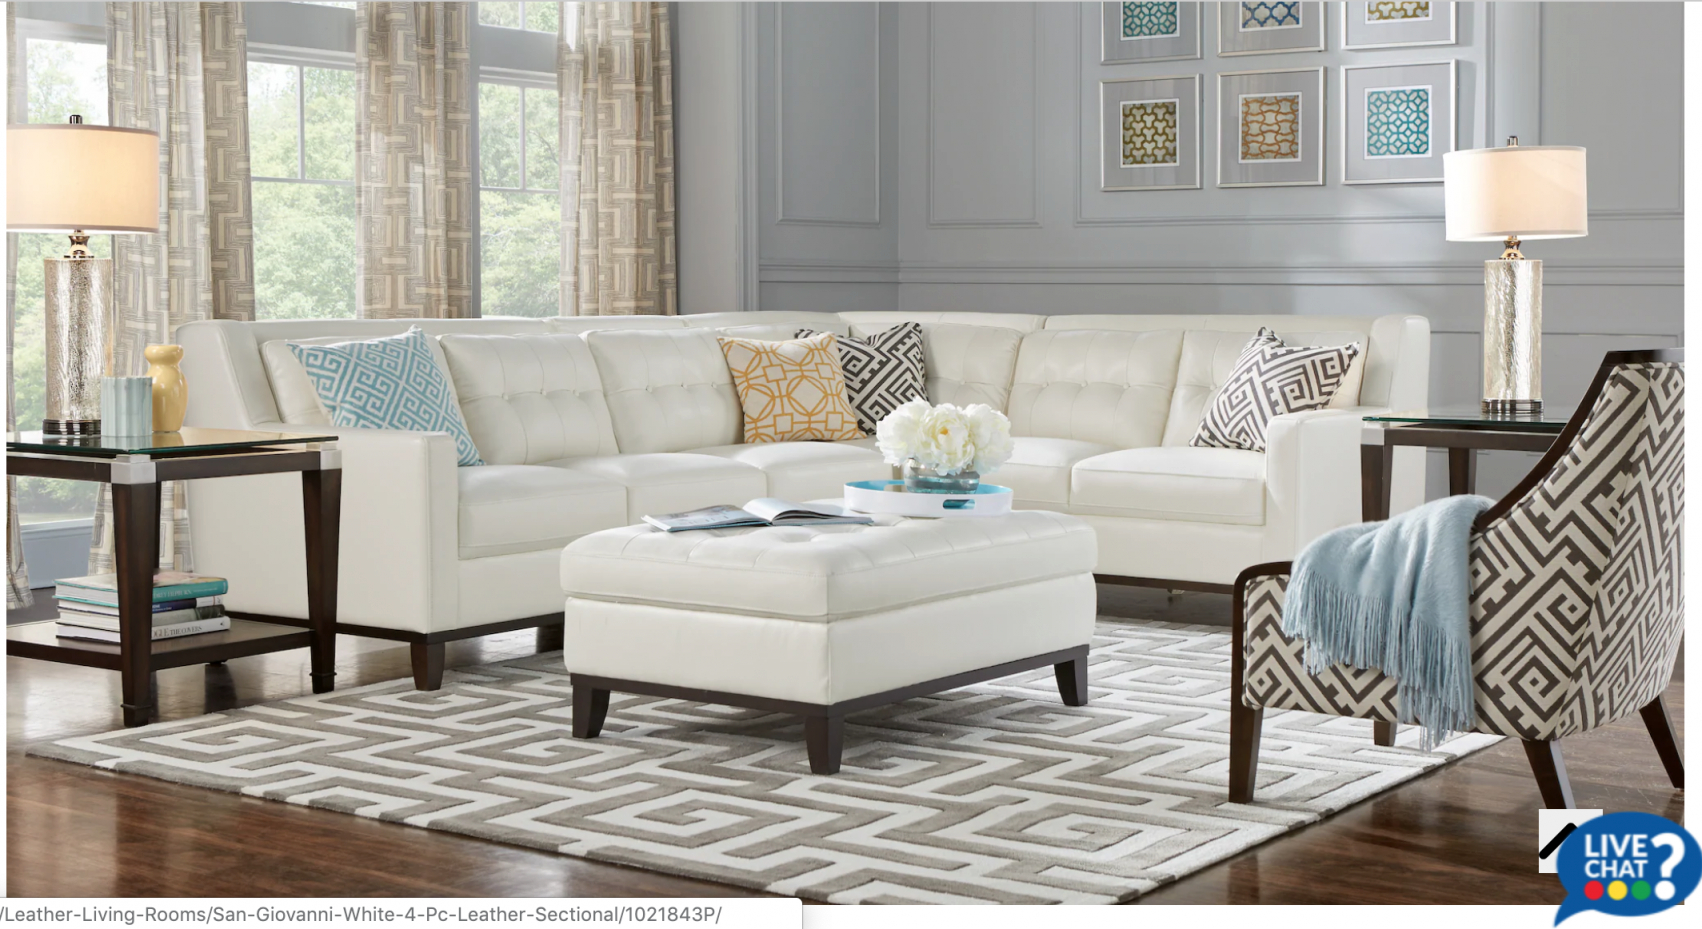 Rooms To Go: San Giovanni White 4Pc Leather Sectional intended for Rooms To Go Living Room Furniture